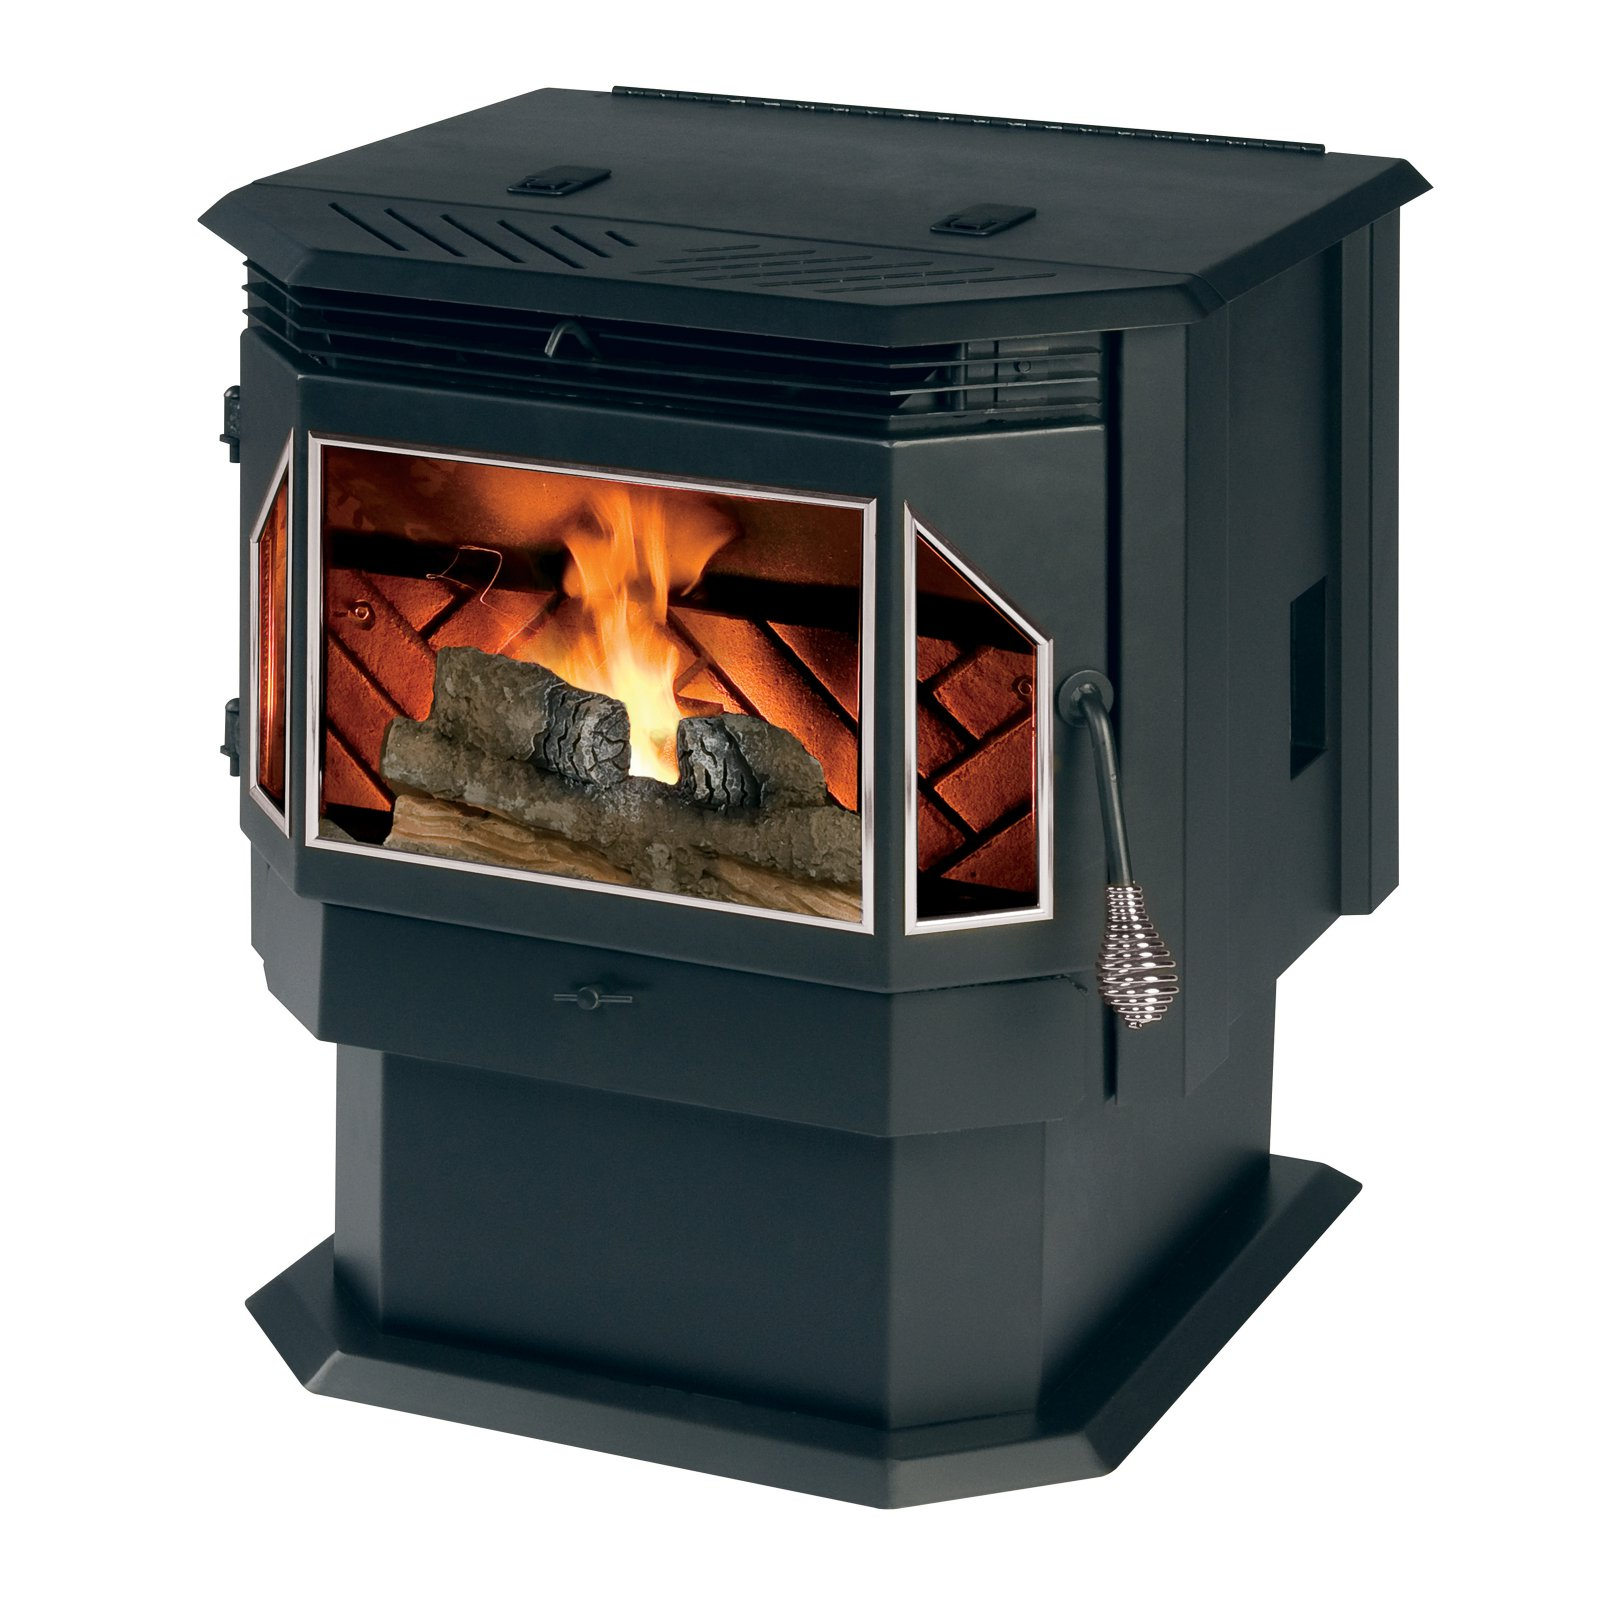 Summers Heat SHPEP Pellet Stove by